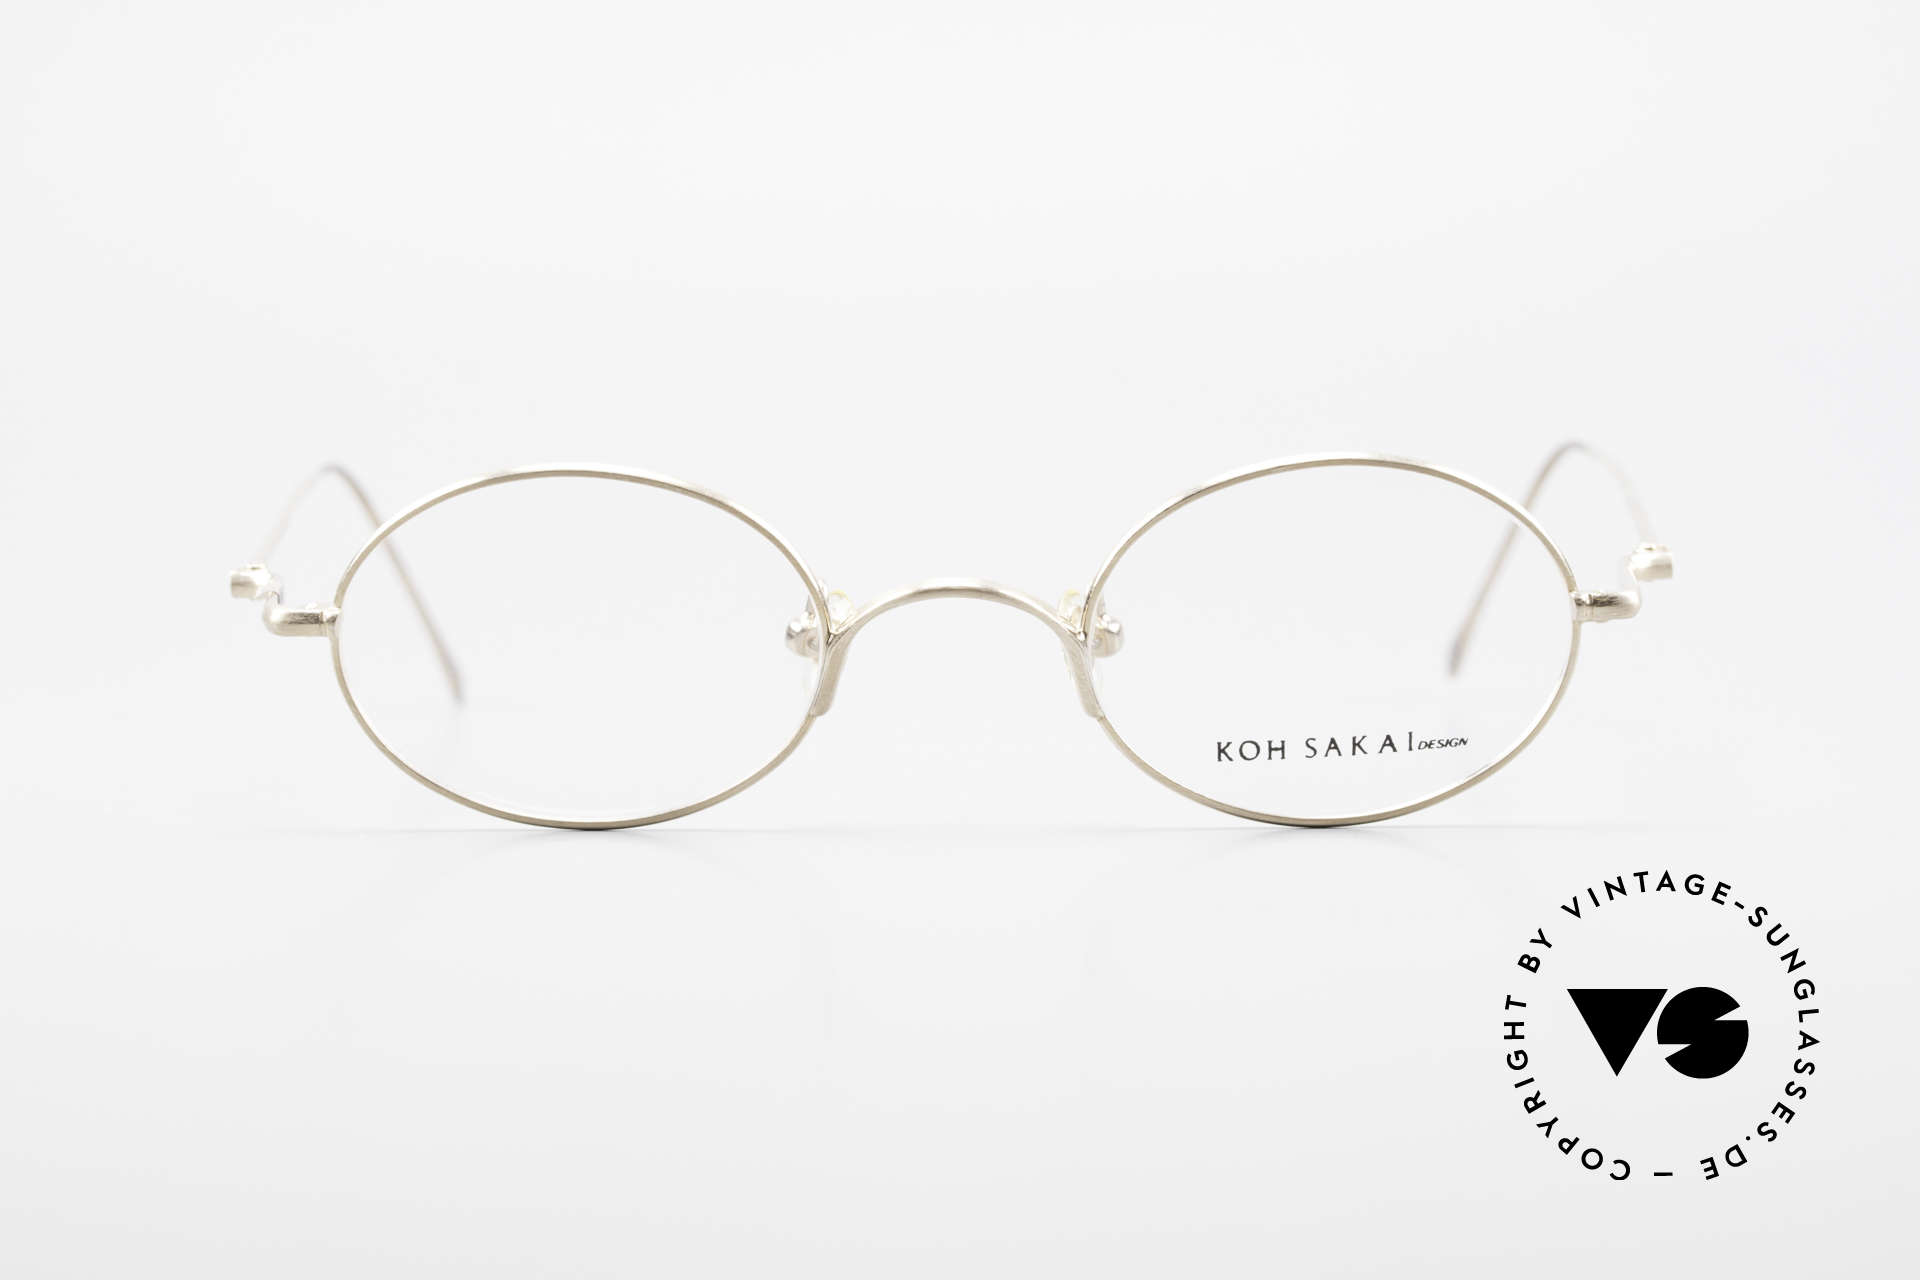 Koh Sakai KS9541 90s Oval Frame Made in Japan, Size: small, Made for Men and Women